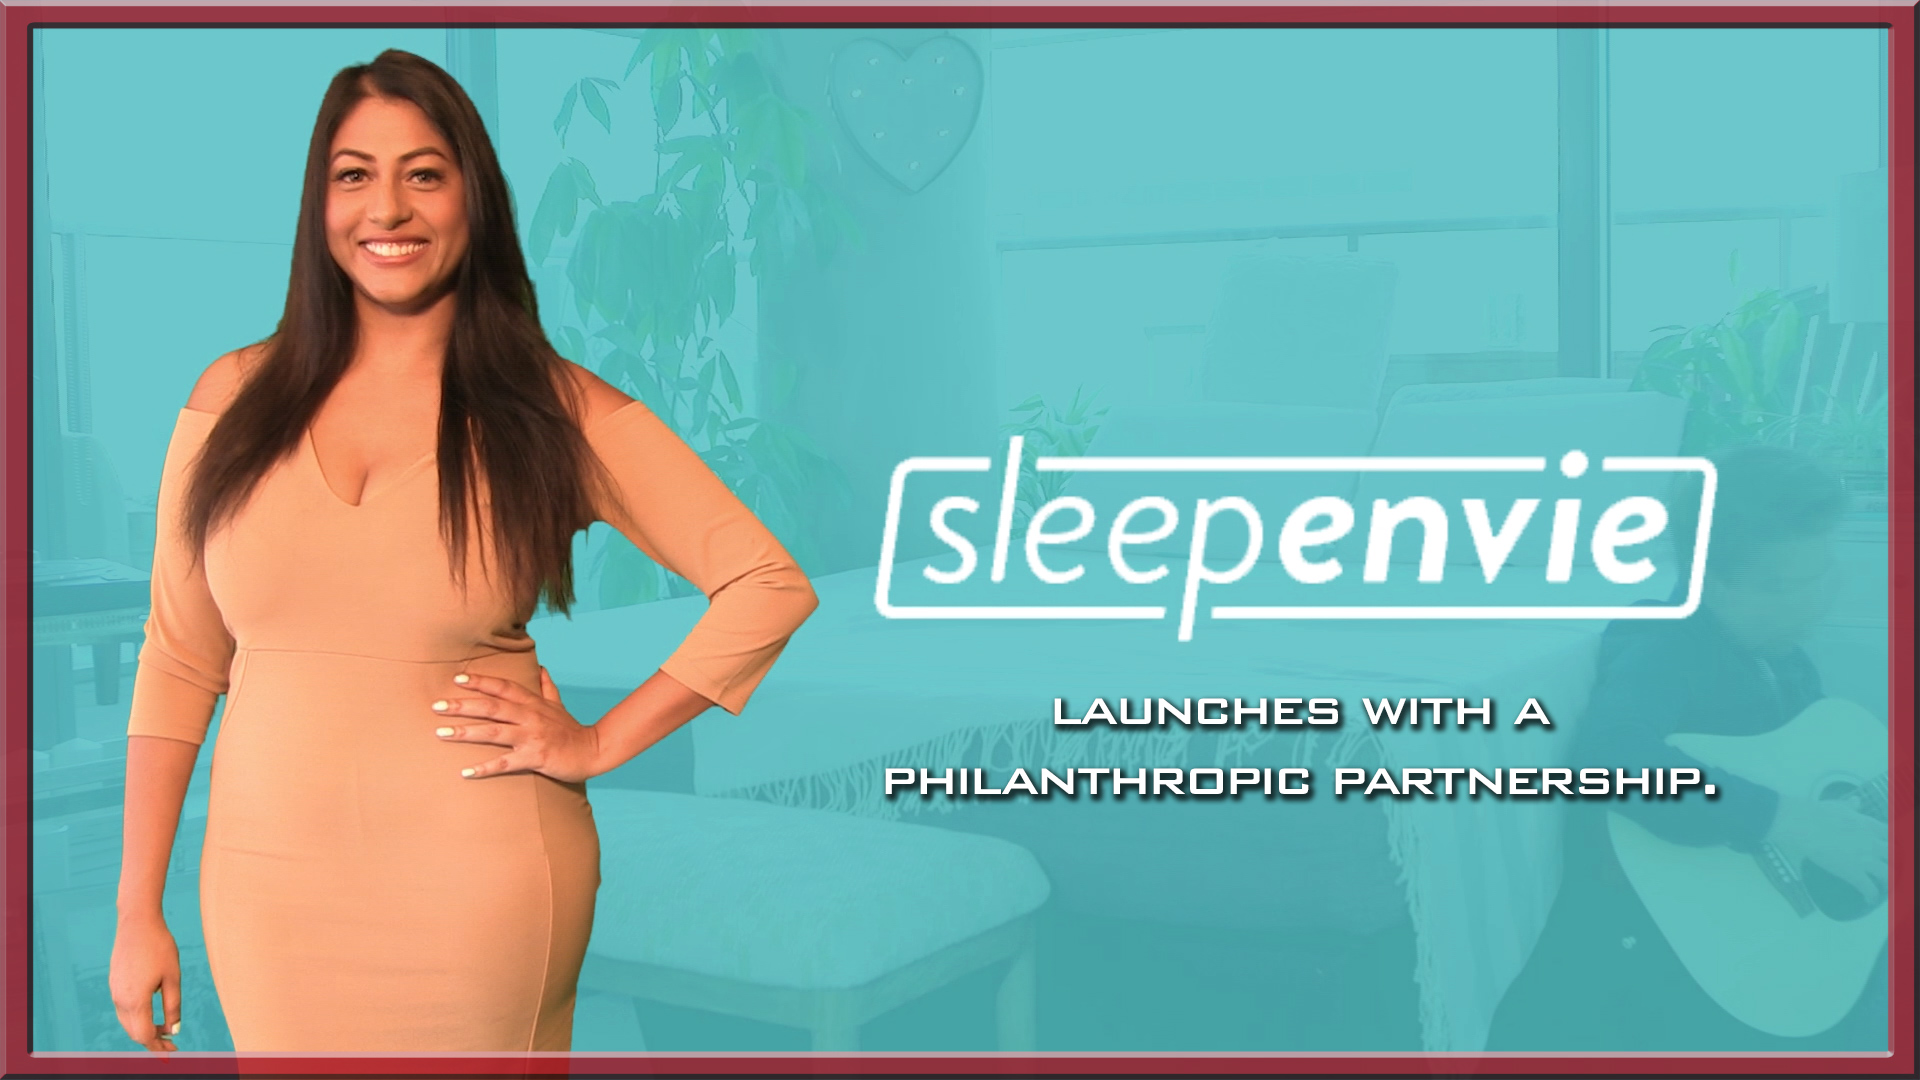 Sleep Envie Launches with a Philanthropic Partnership